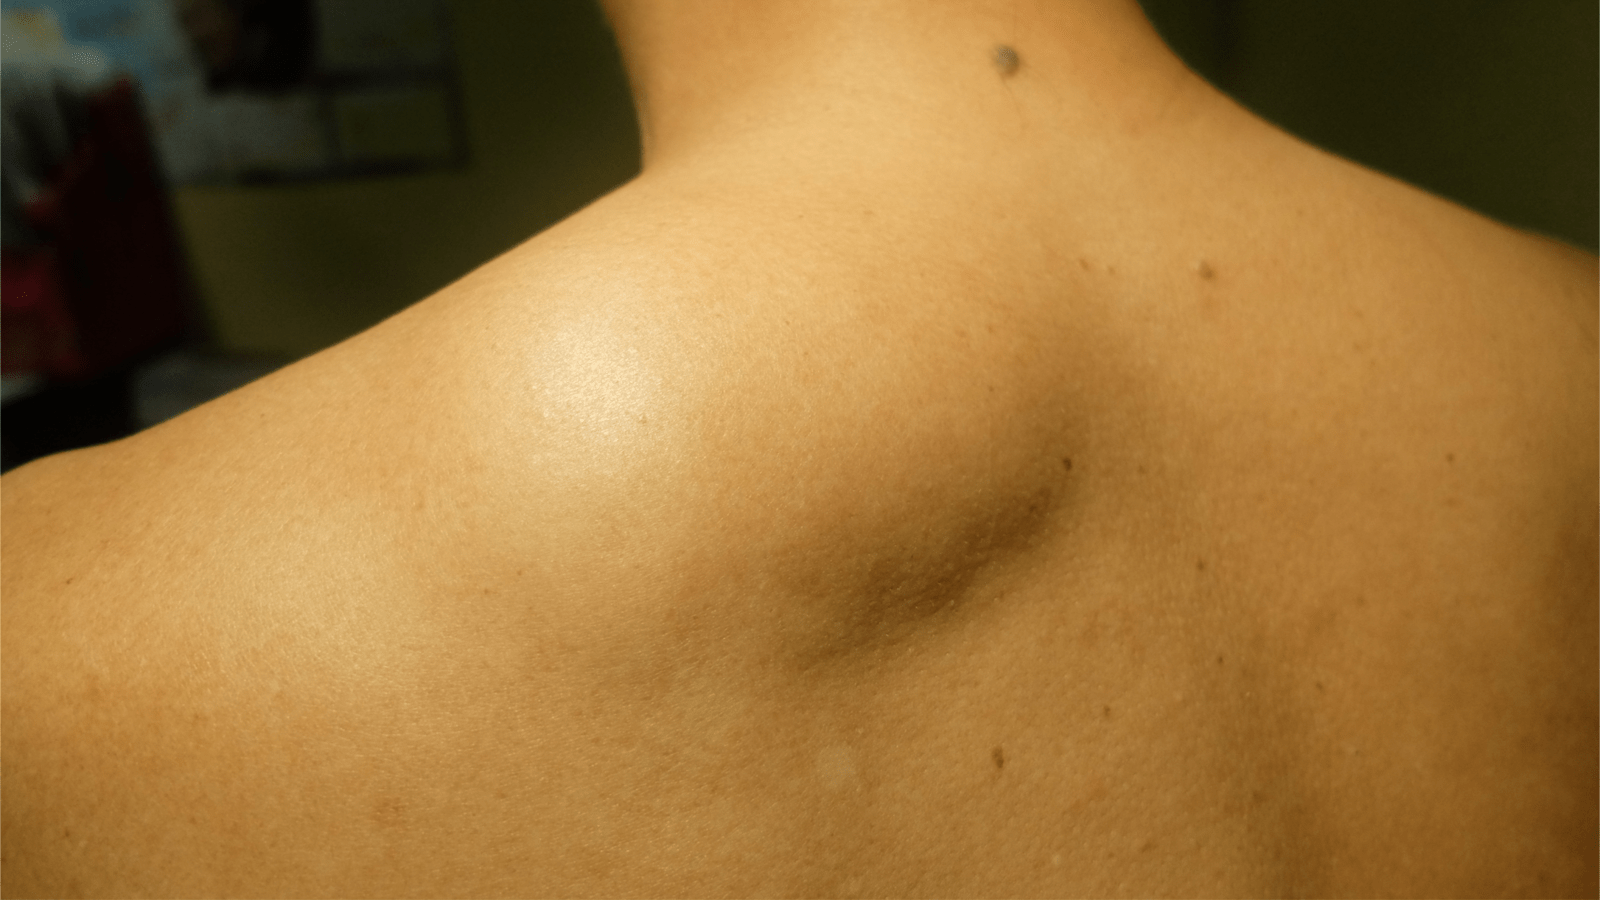 lipoma of shoulder - Lipoma